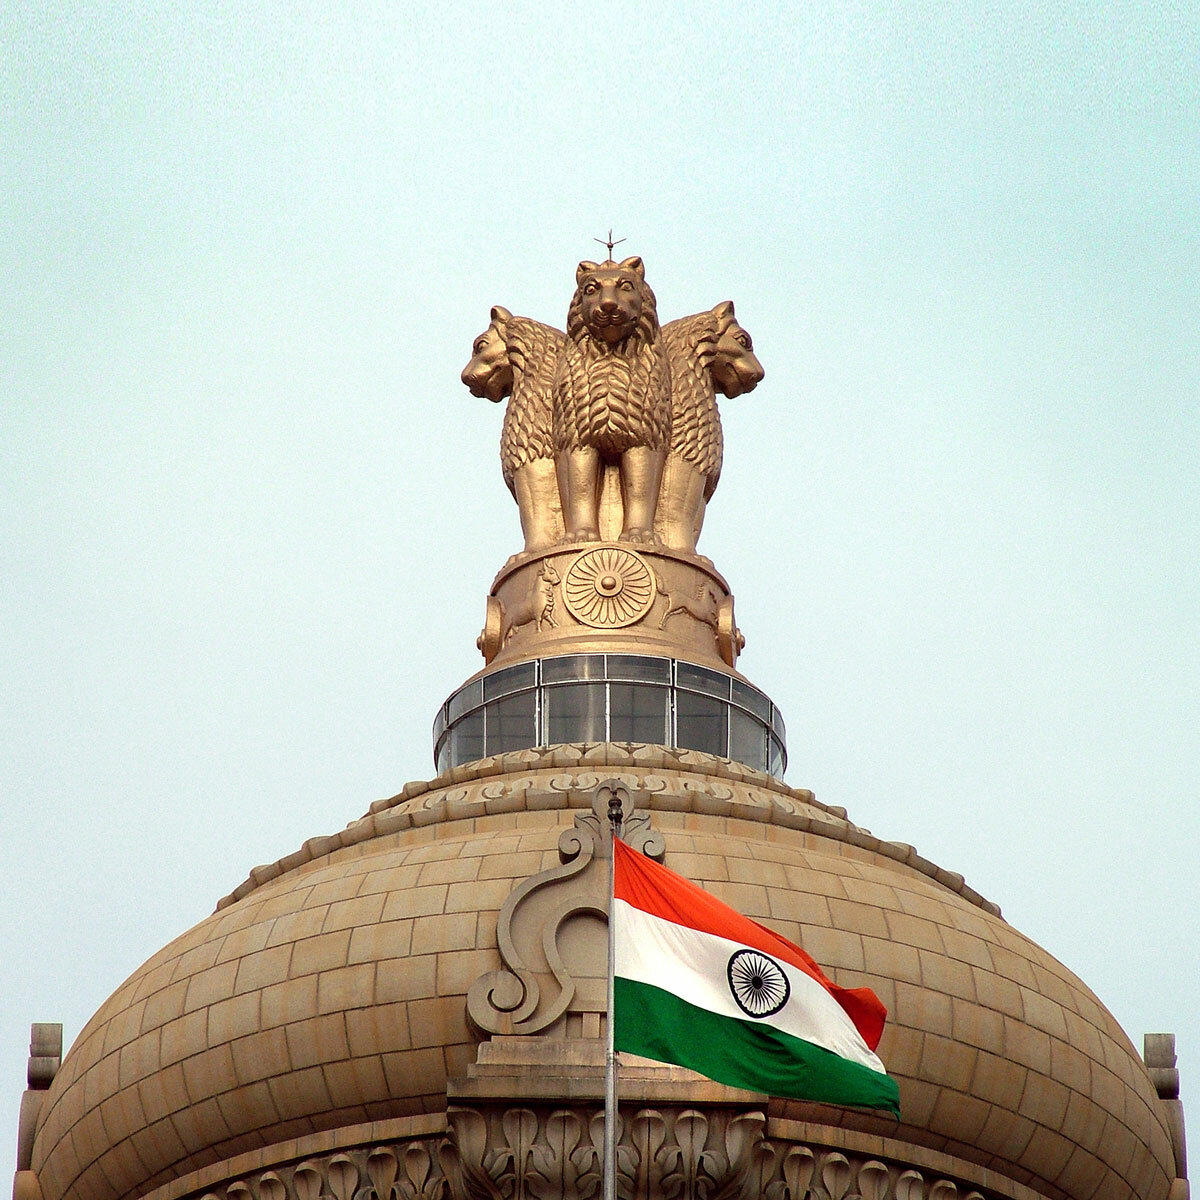 Outdoor Indian Flag On Vidhana Soudha, Bangalore, made by The Flag Corp